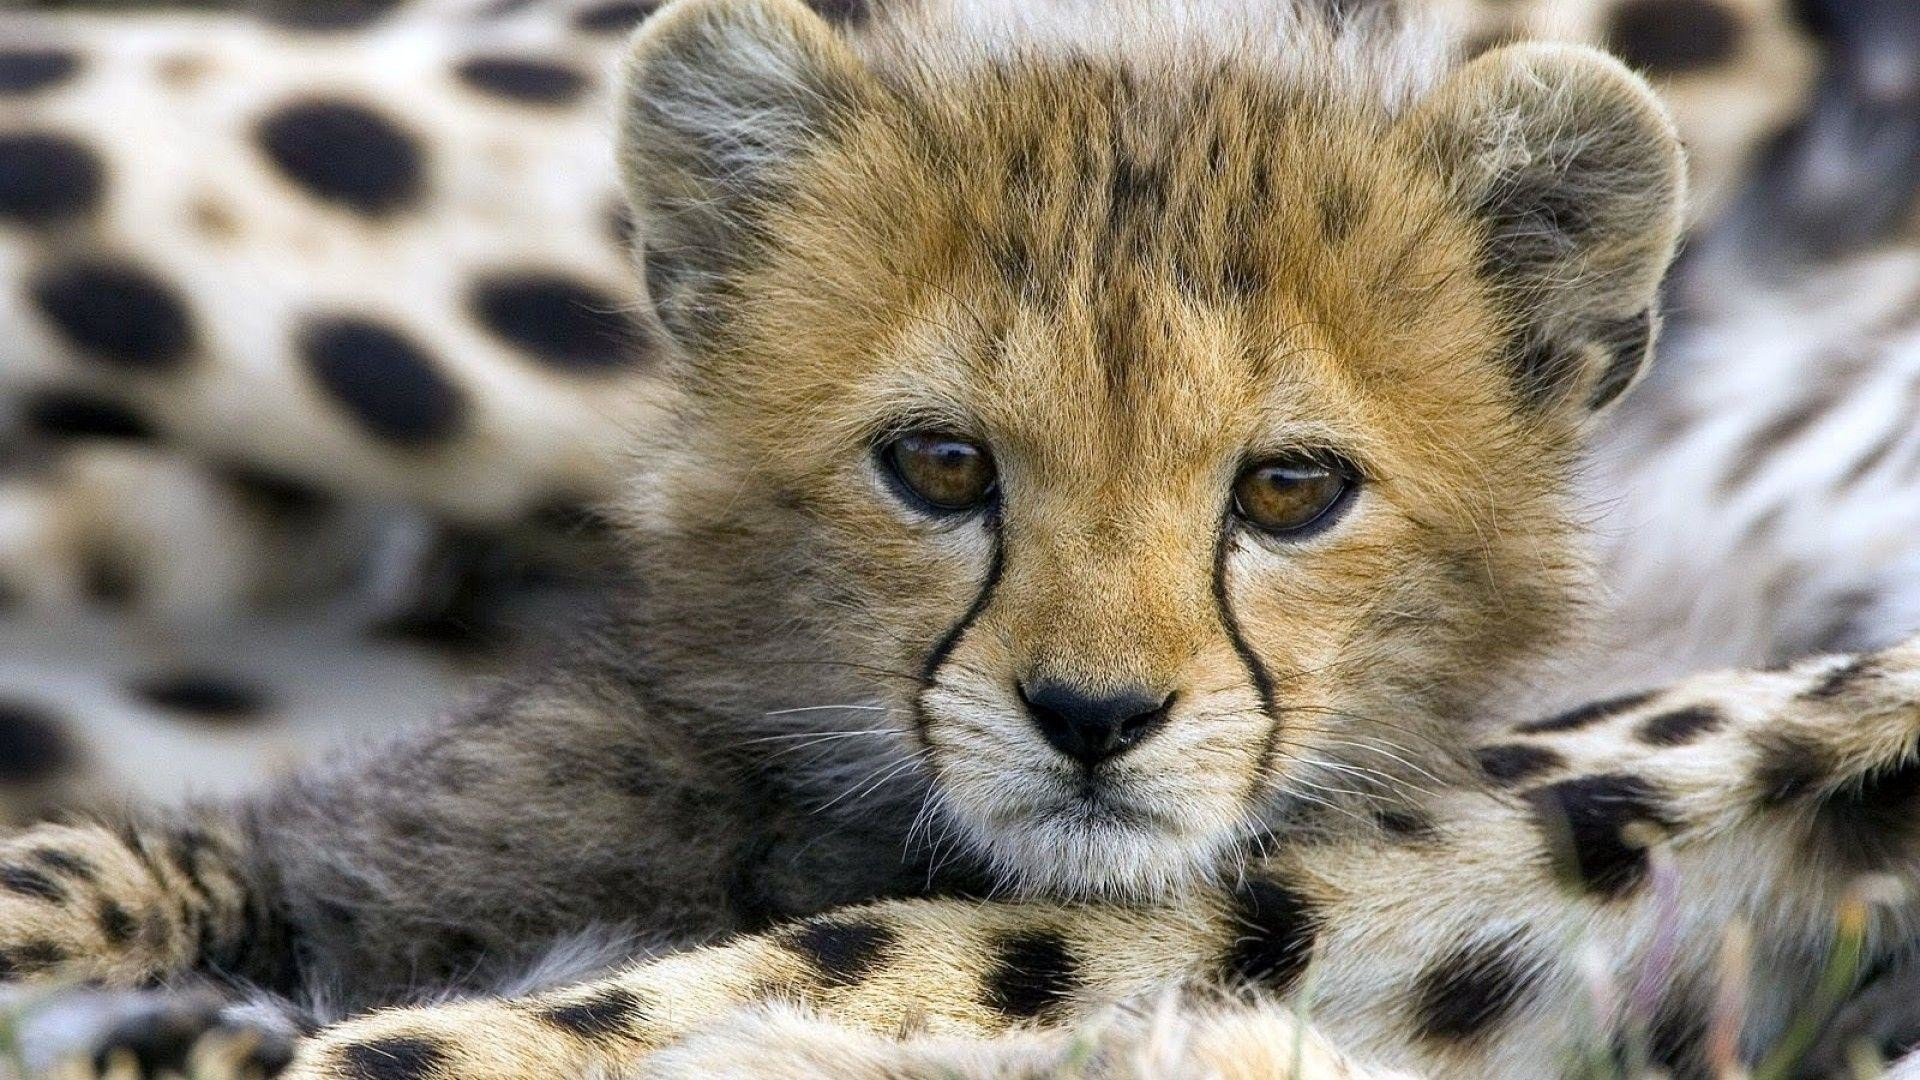 Cute Cheetah Wallpaper (58+ Images)